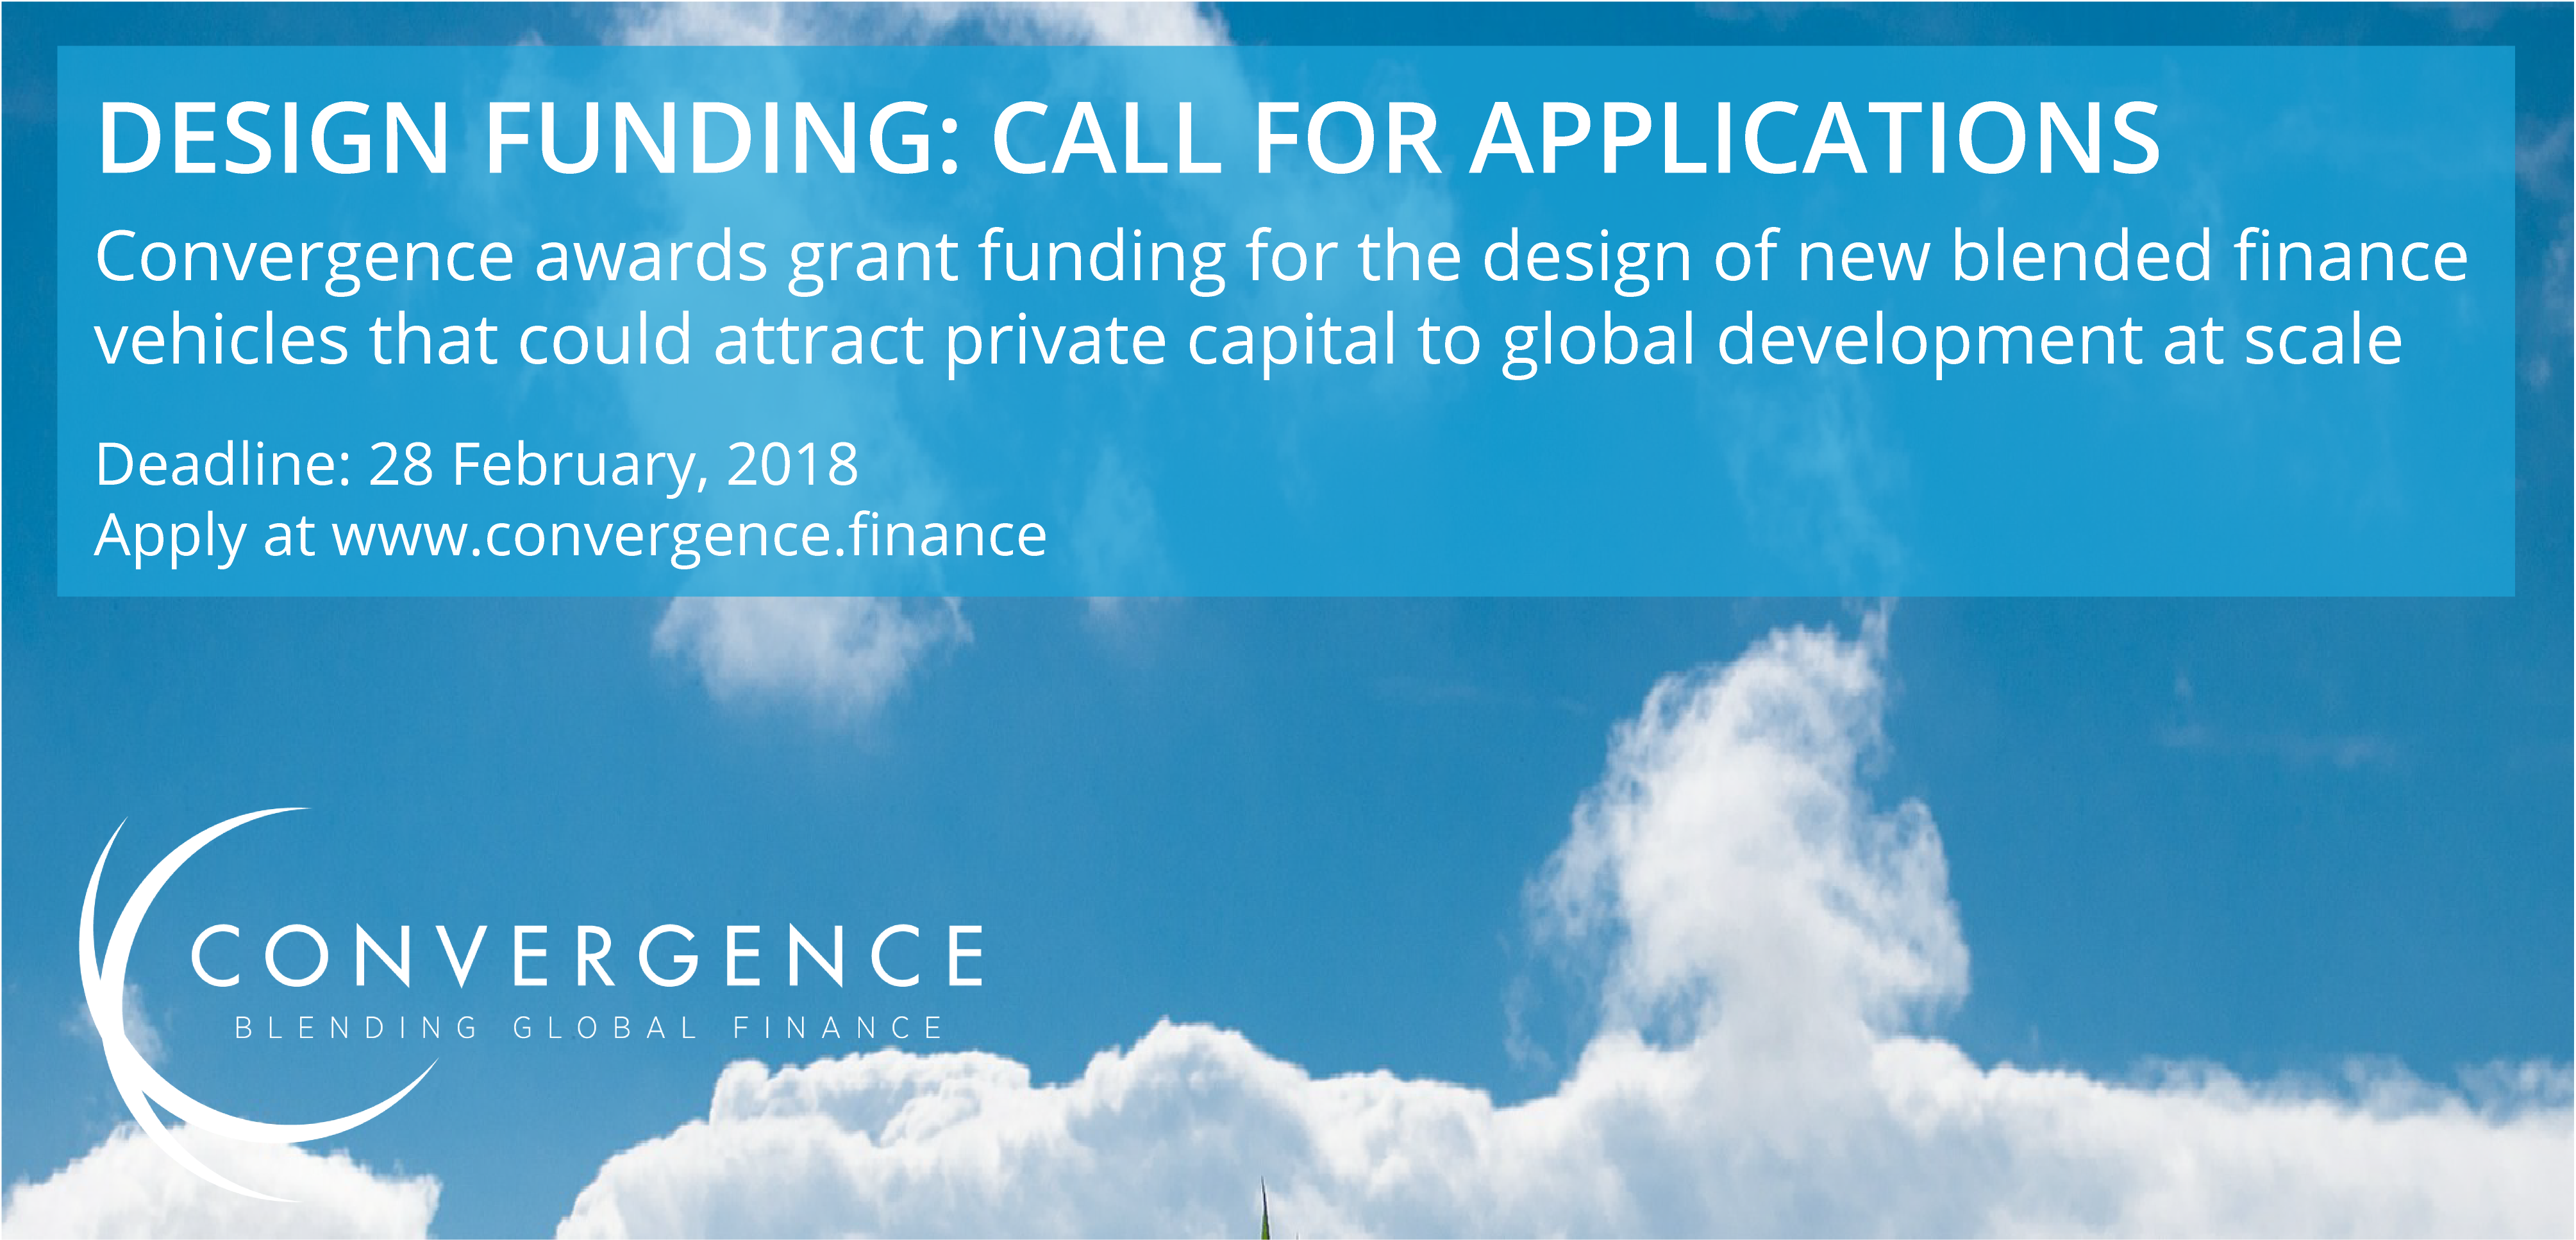 Design Funding for catalytic blended finance vehicles